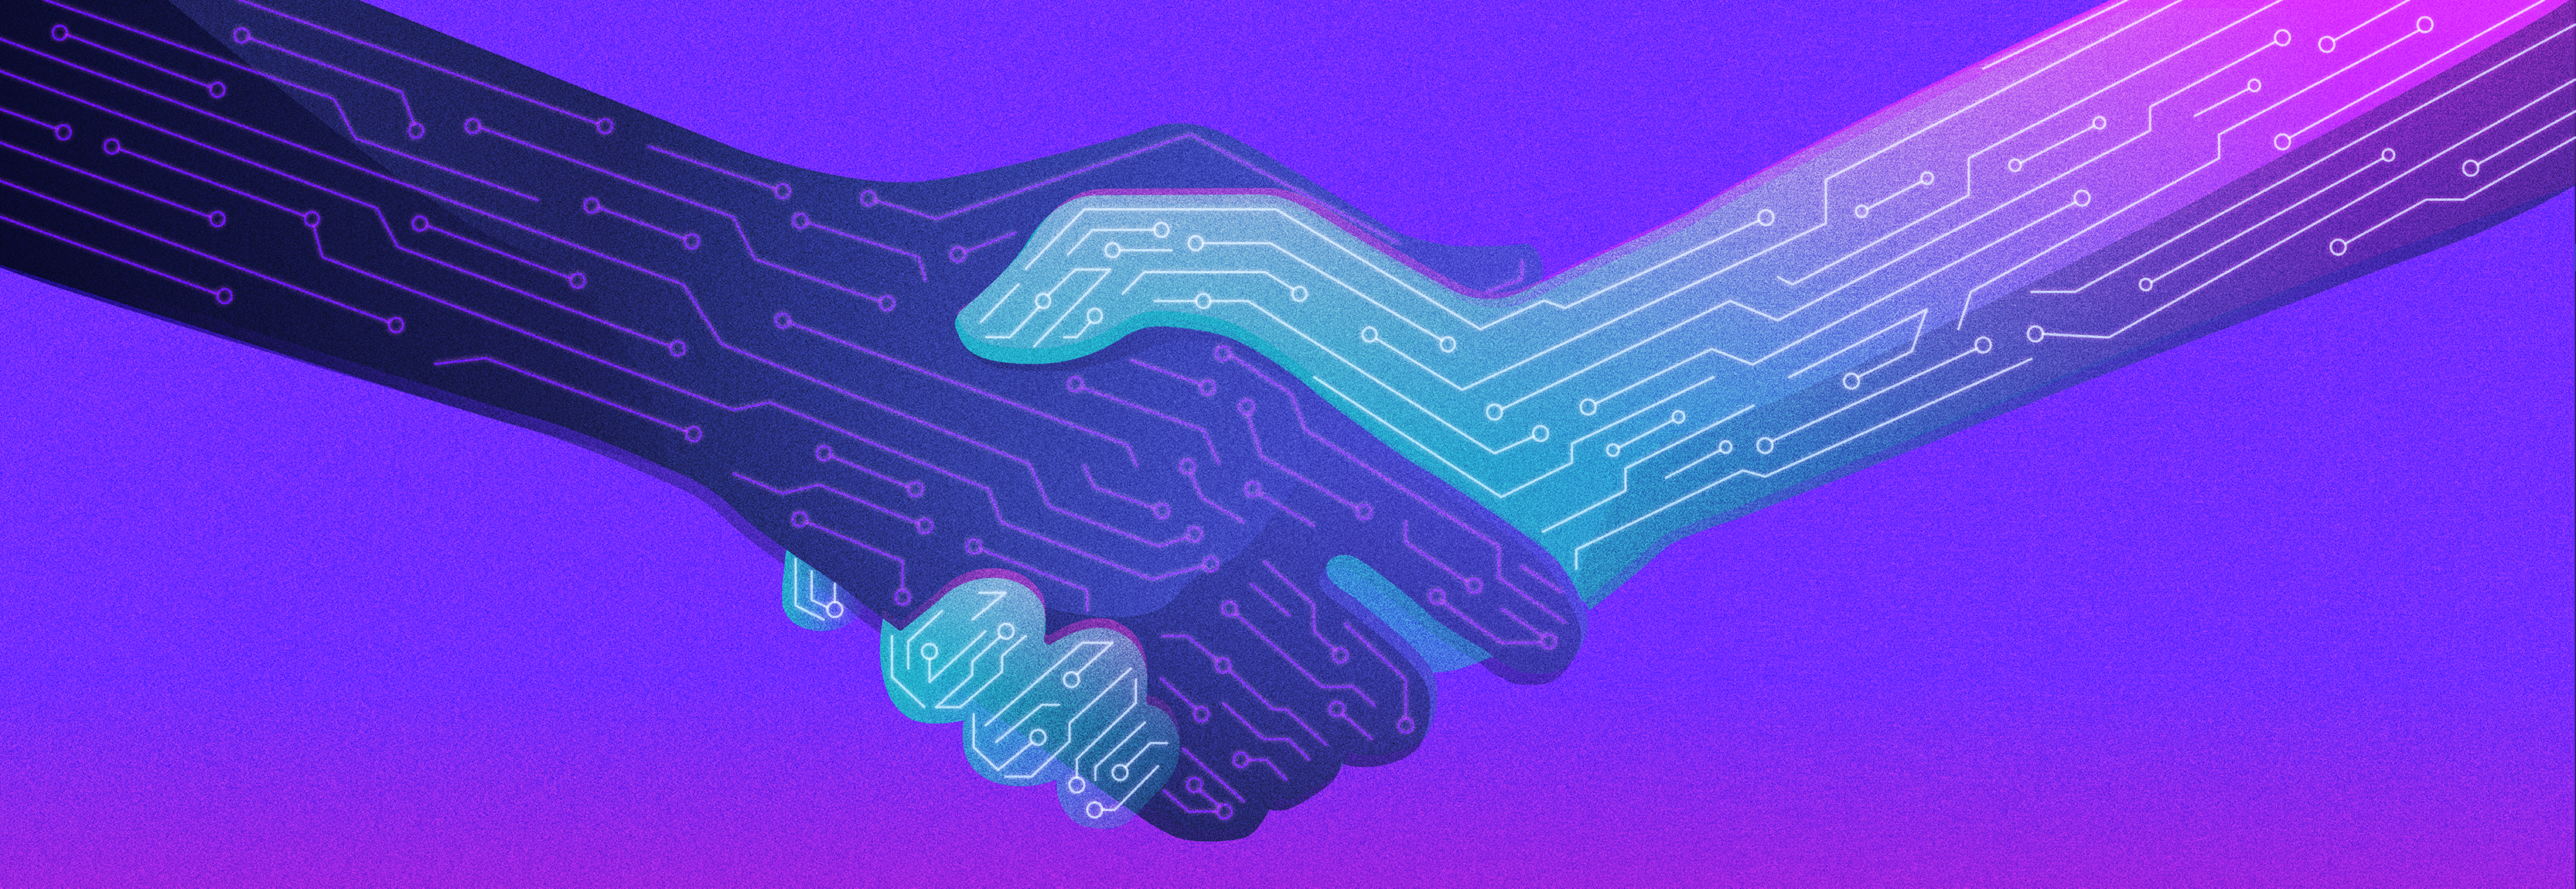 illustration of hand shaking, they are illustrated with computer chip boards on their skin